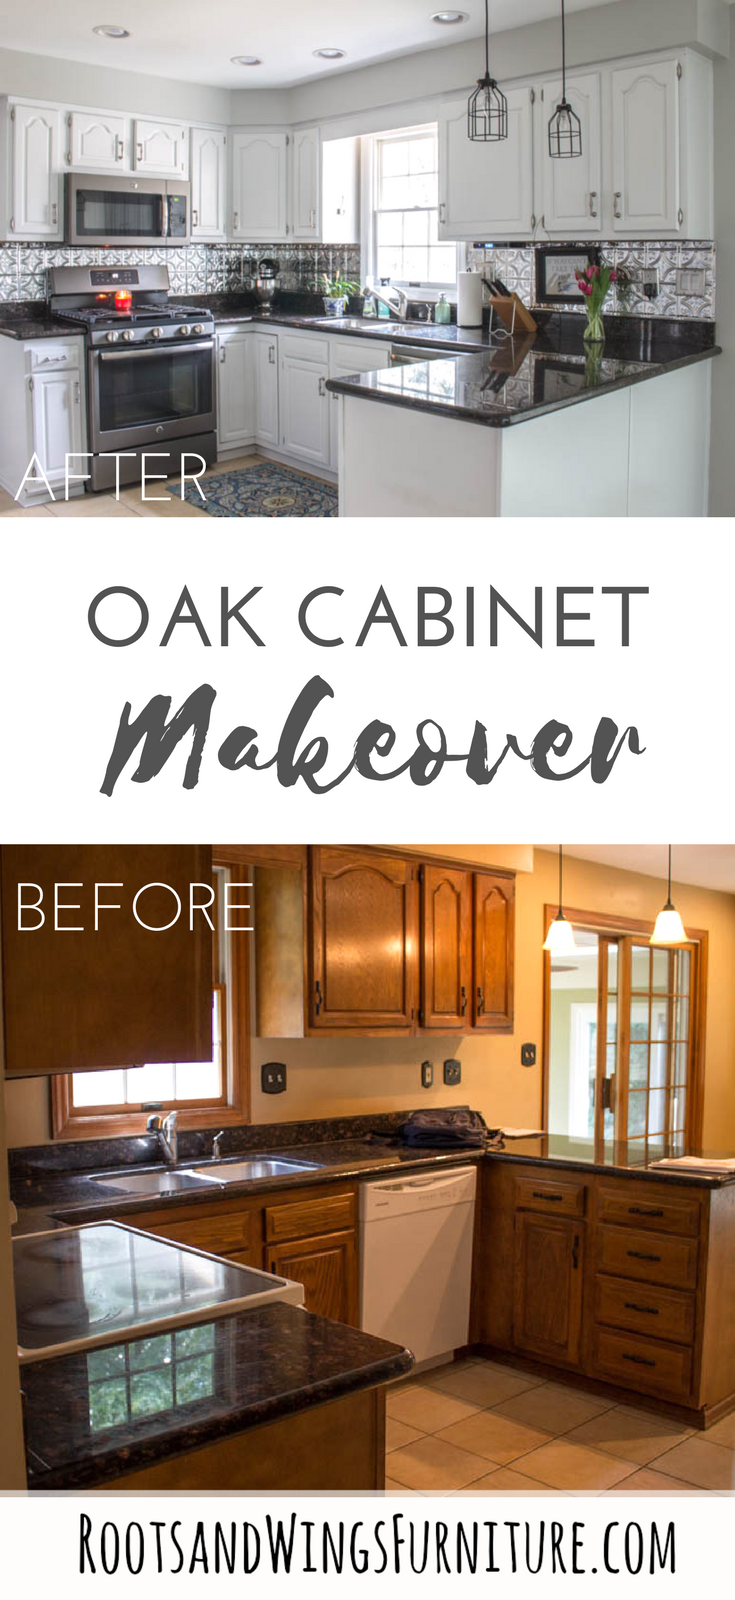 How To Paint Oak Kitchen Cabinets White Without Bleed Through The Best Way To Paint And Prime Ca Kitchen Cabinets Makeover New Kitchen Cabinets Kitchen Design